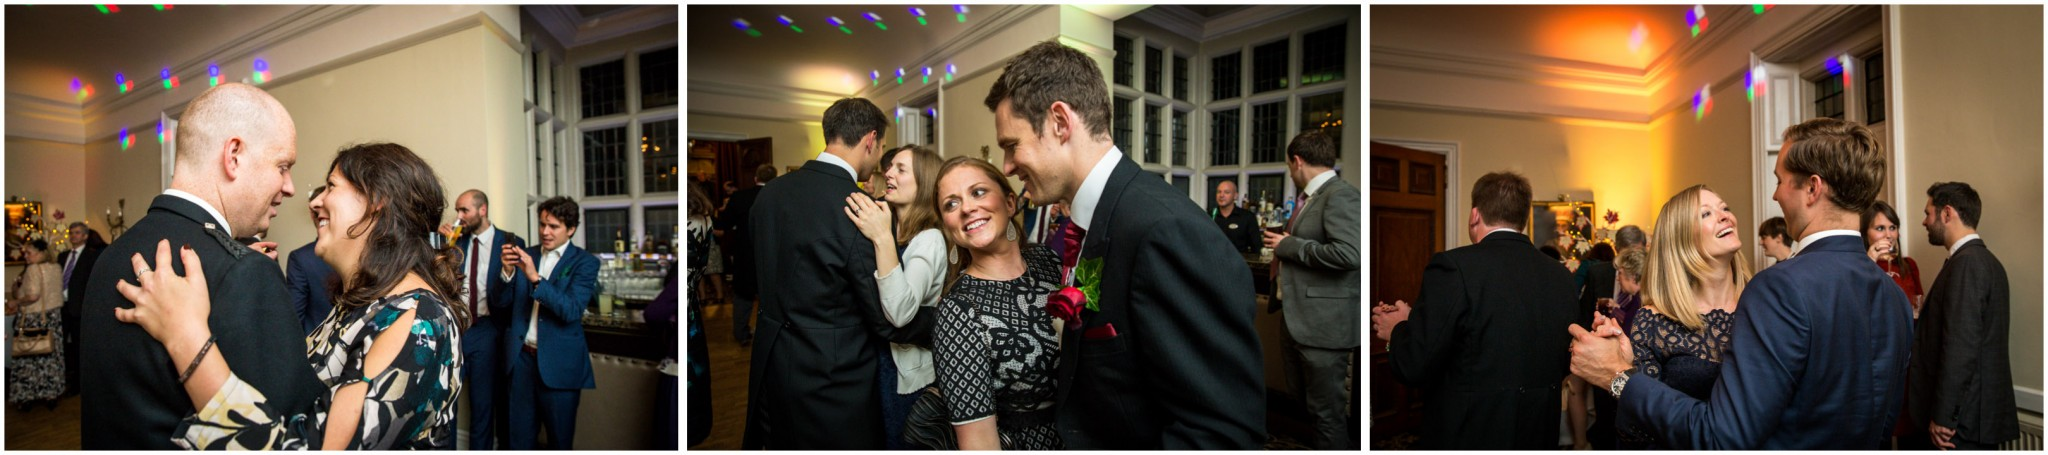 Rhinefield House Wedding Guests Dancing